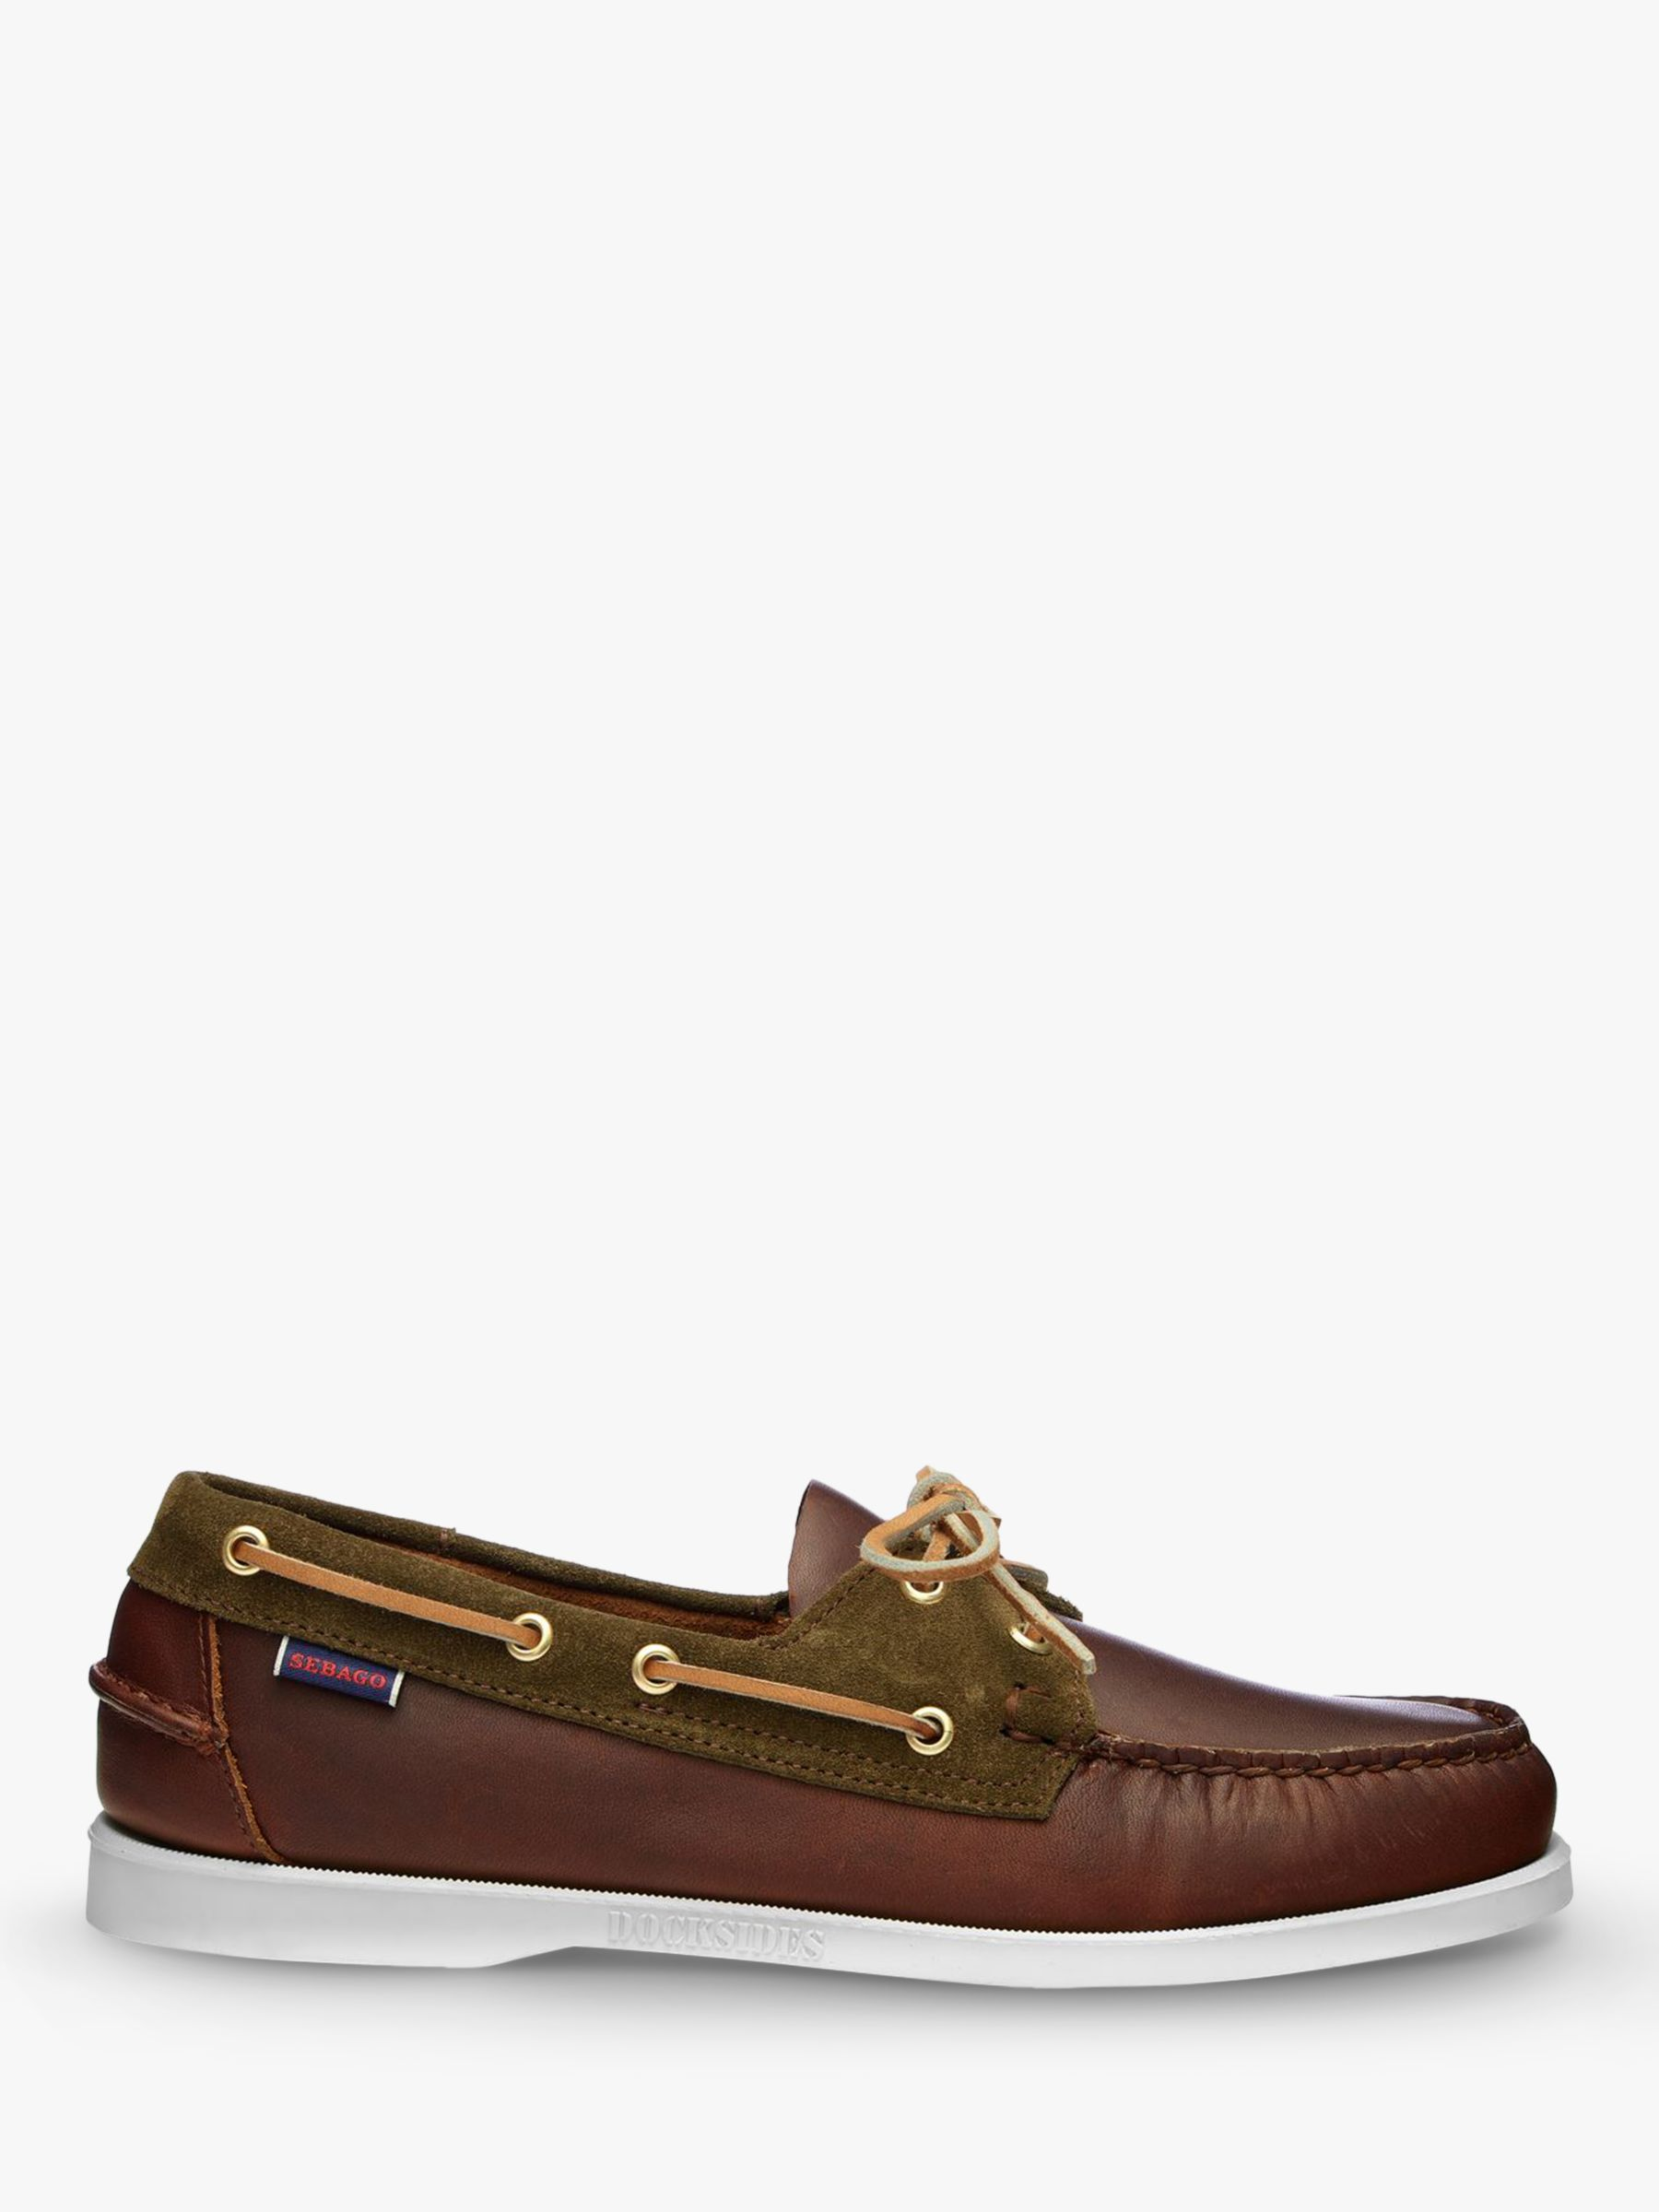 Sebago Sebago Trickey Leather Boat Shoes, Cuoio/Military Green